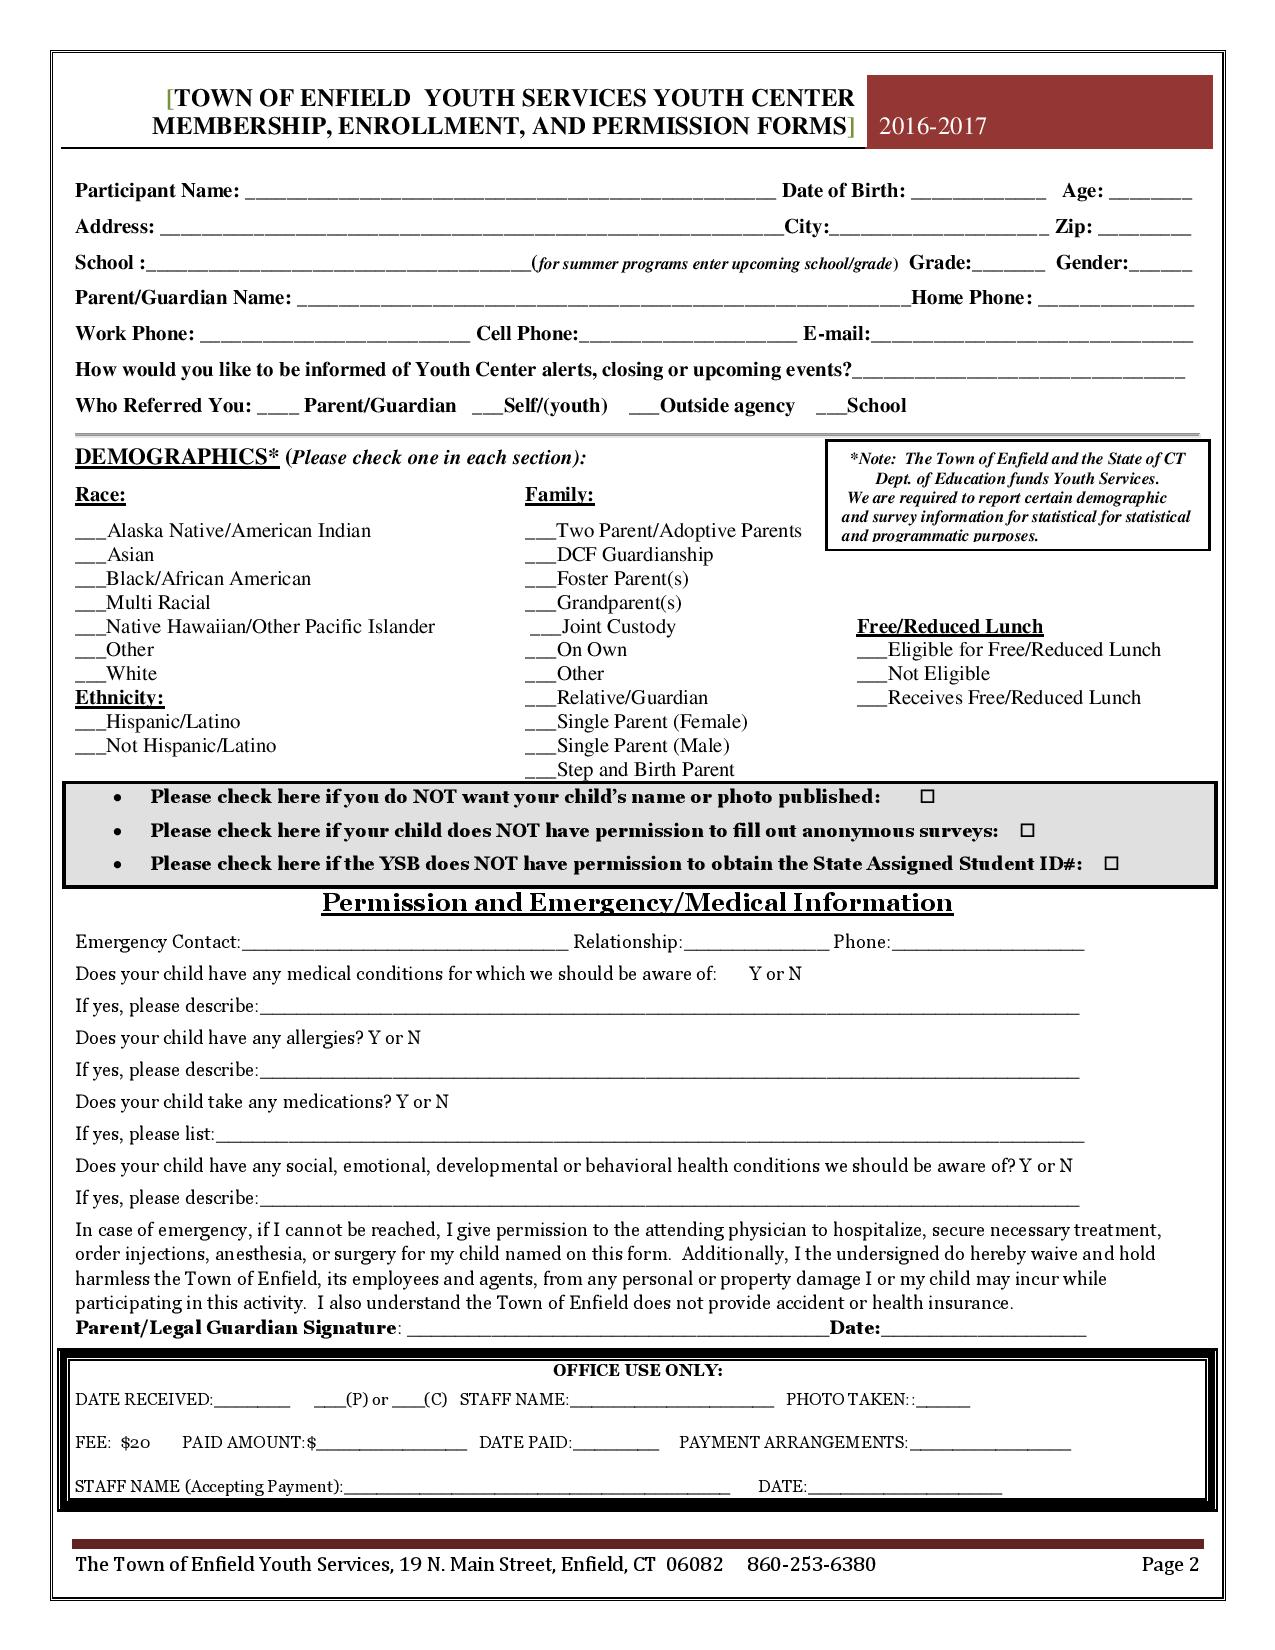 Youth center packet 16-17 (1)-page-002